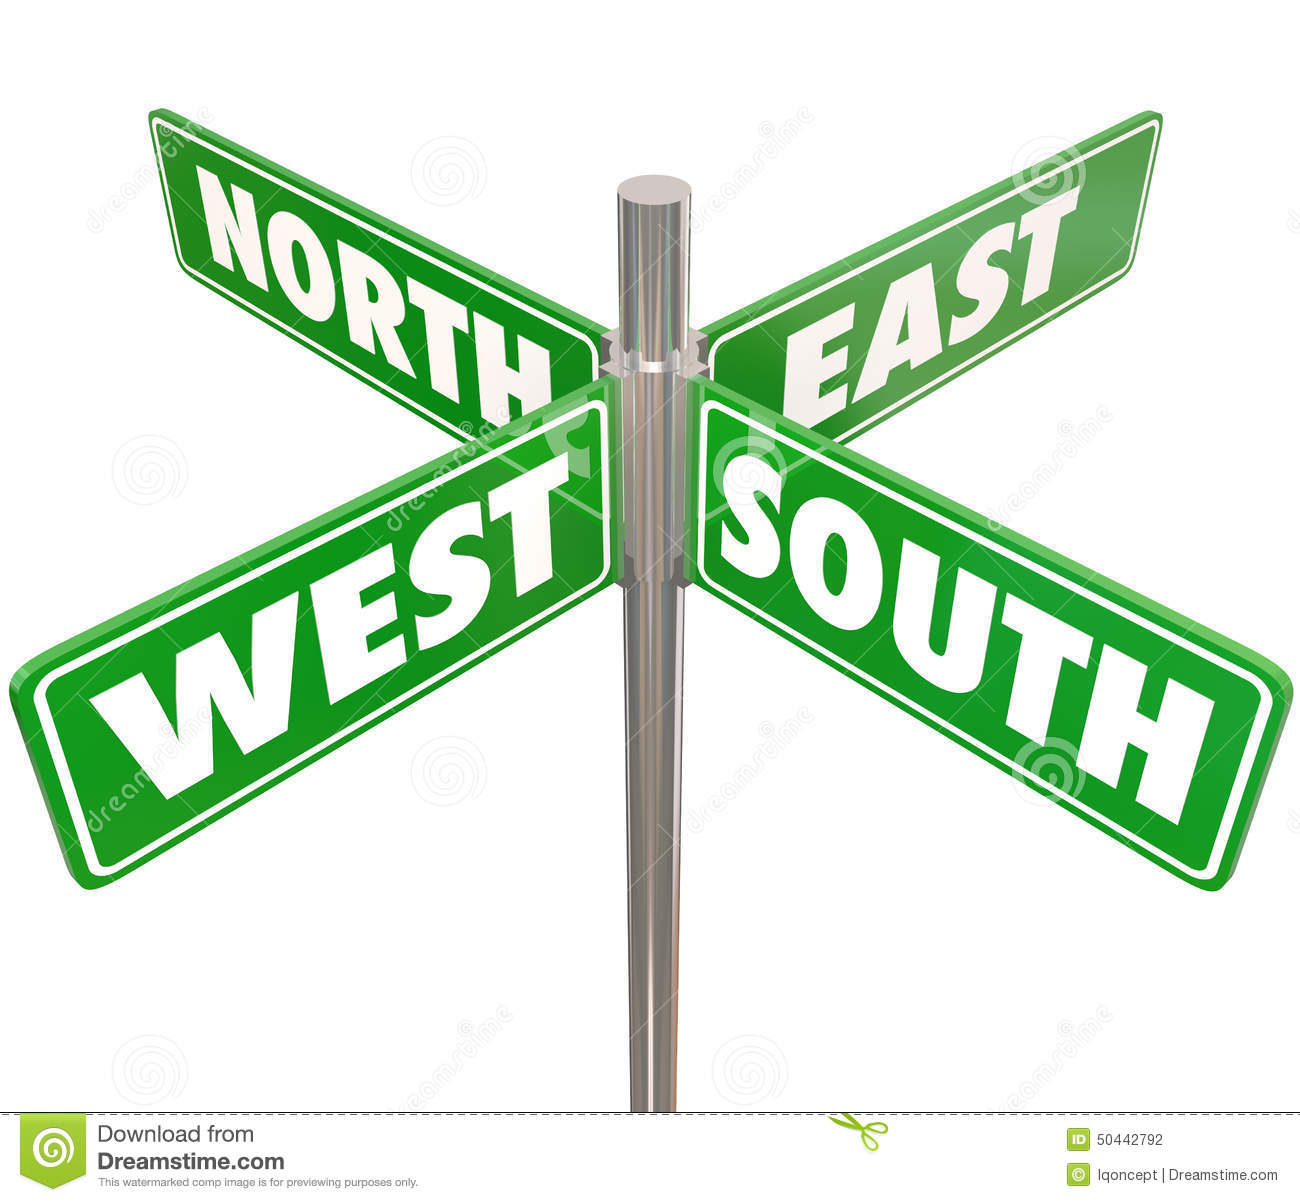 North South East West 4 Way Green Road Signs Intersection Stock.